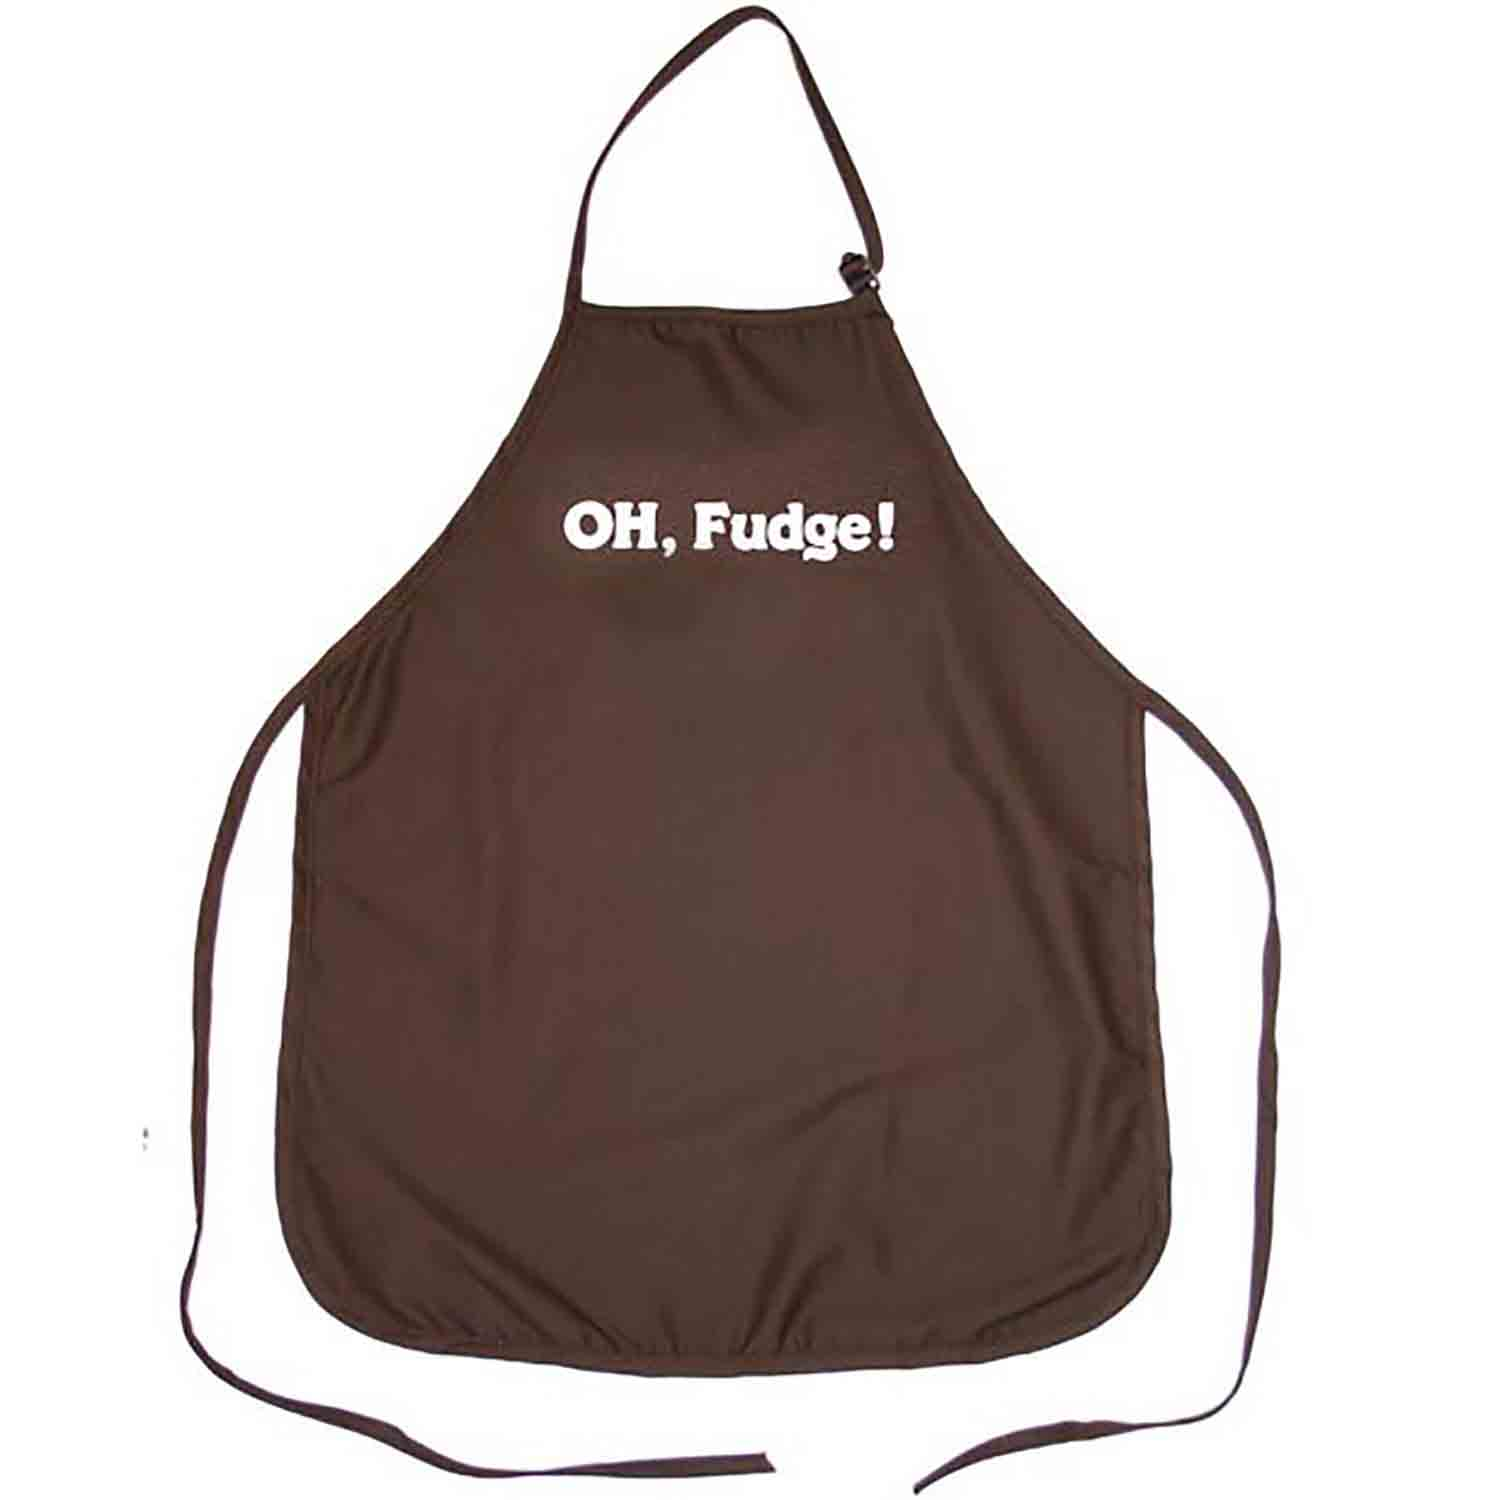 Oh Fudge! Apron